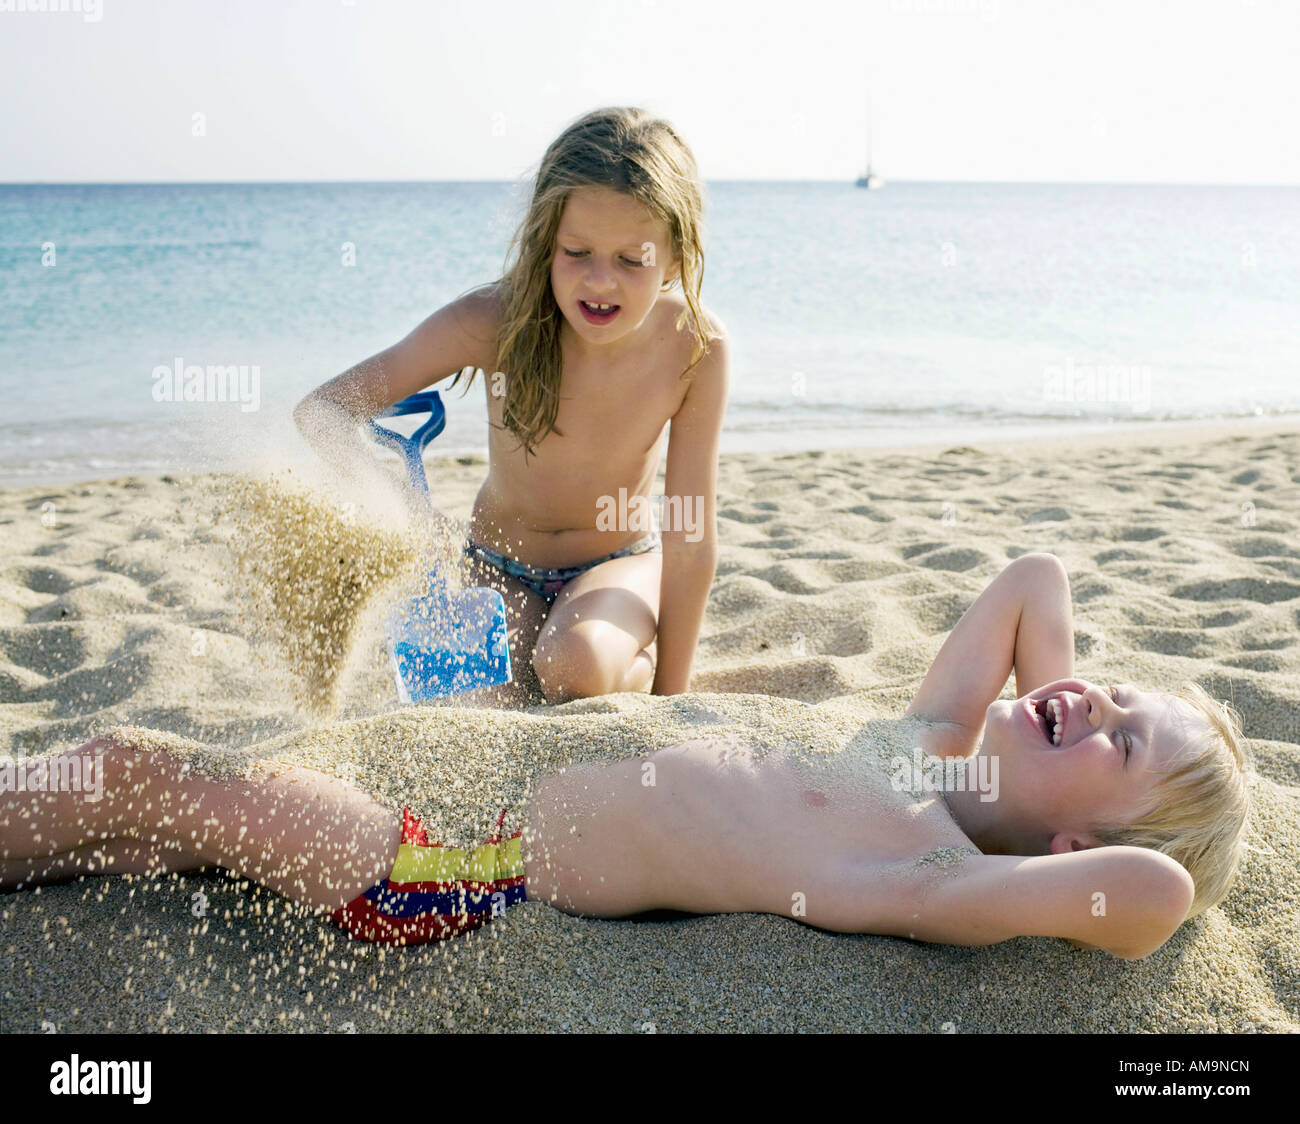 Young girl pouring sand onto a laughing young boy at the beach. Stock Photo